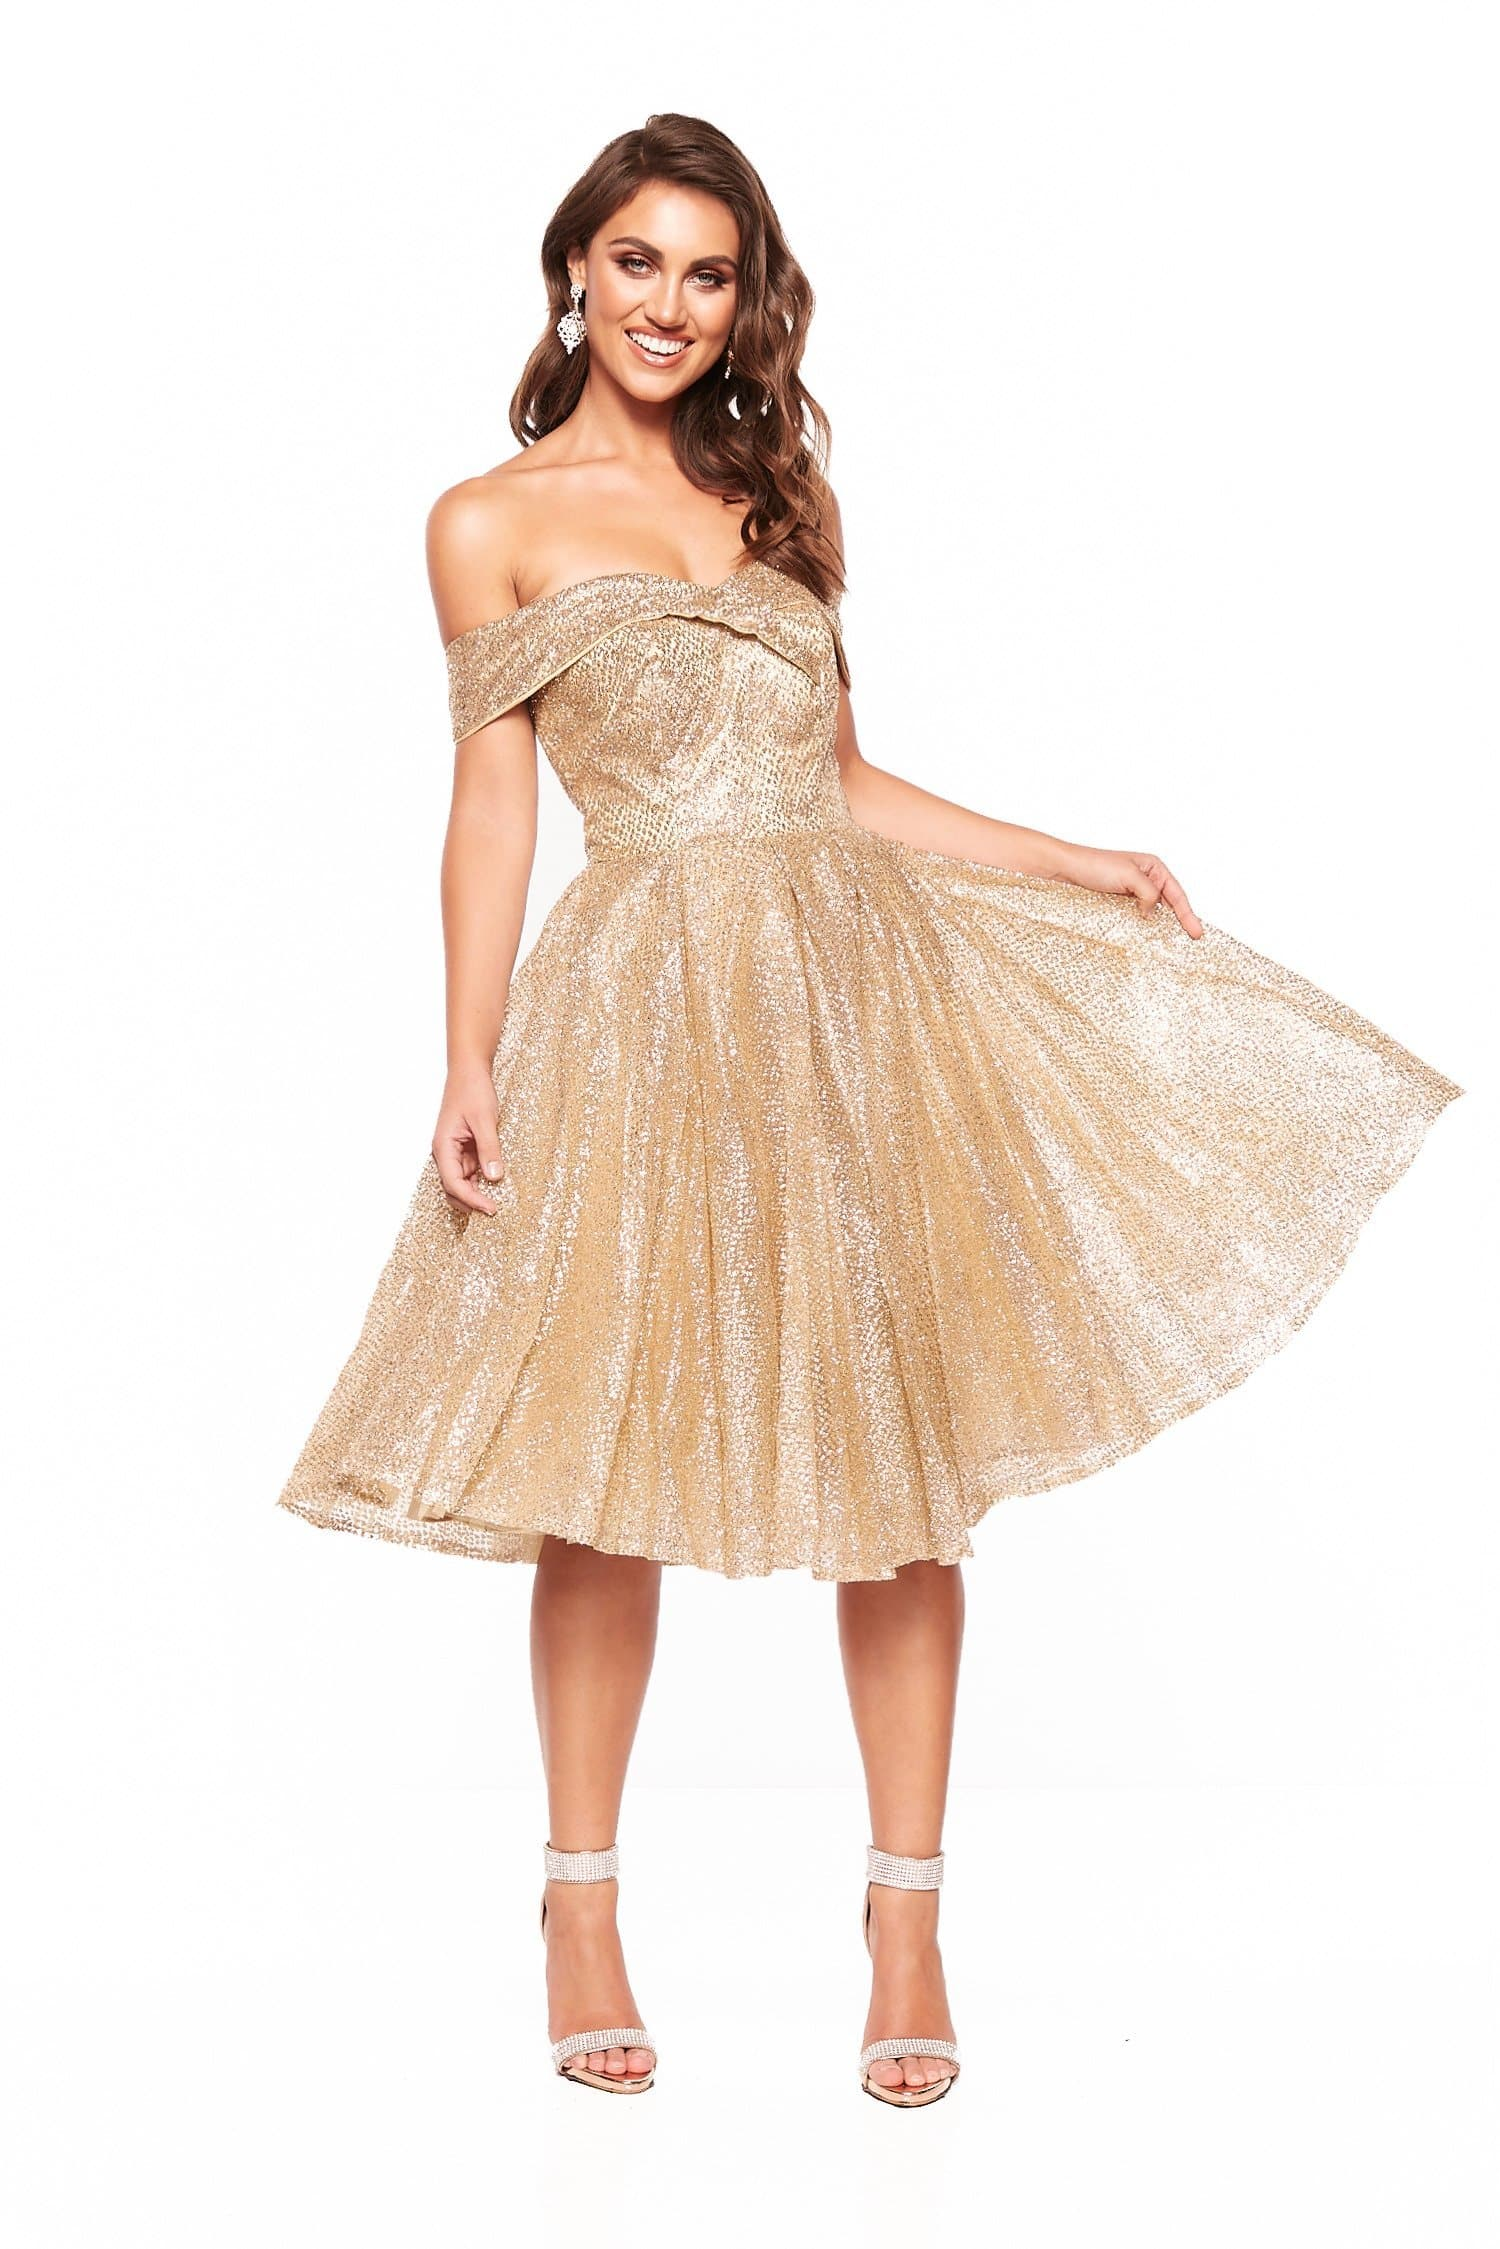 9f72a06c1c7c A N Nyla Glitter Cocktail Off Shoulder Midi Dress - Gold – A N Luxe ...